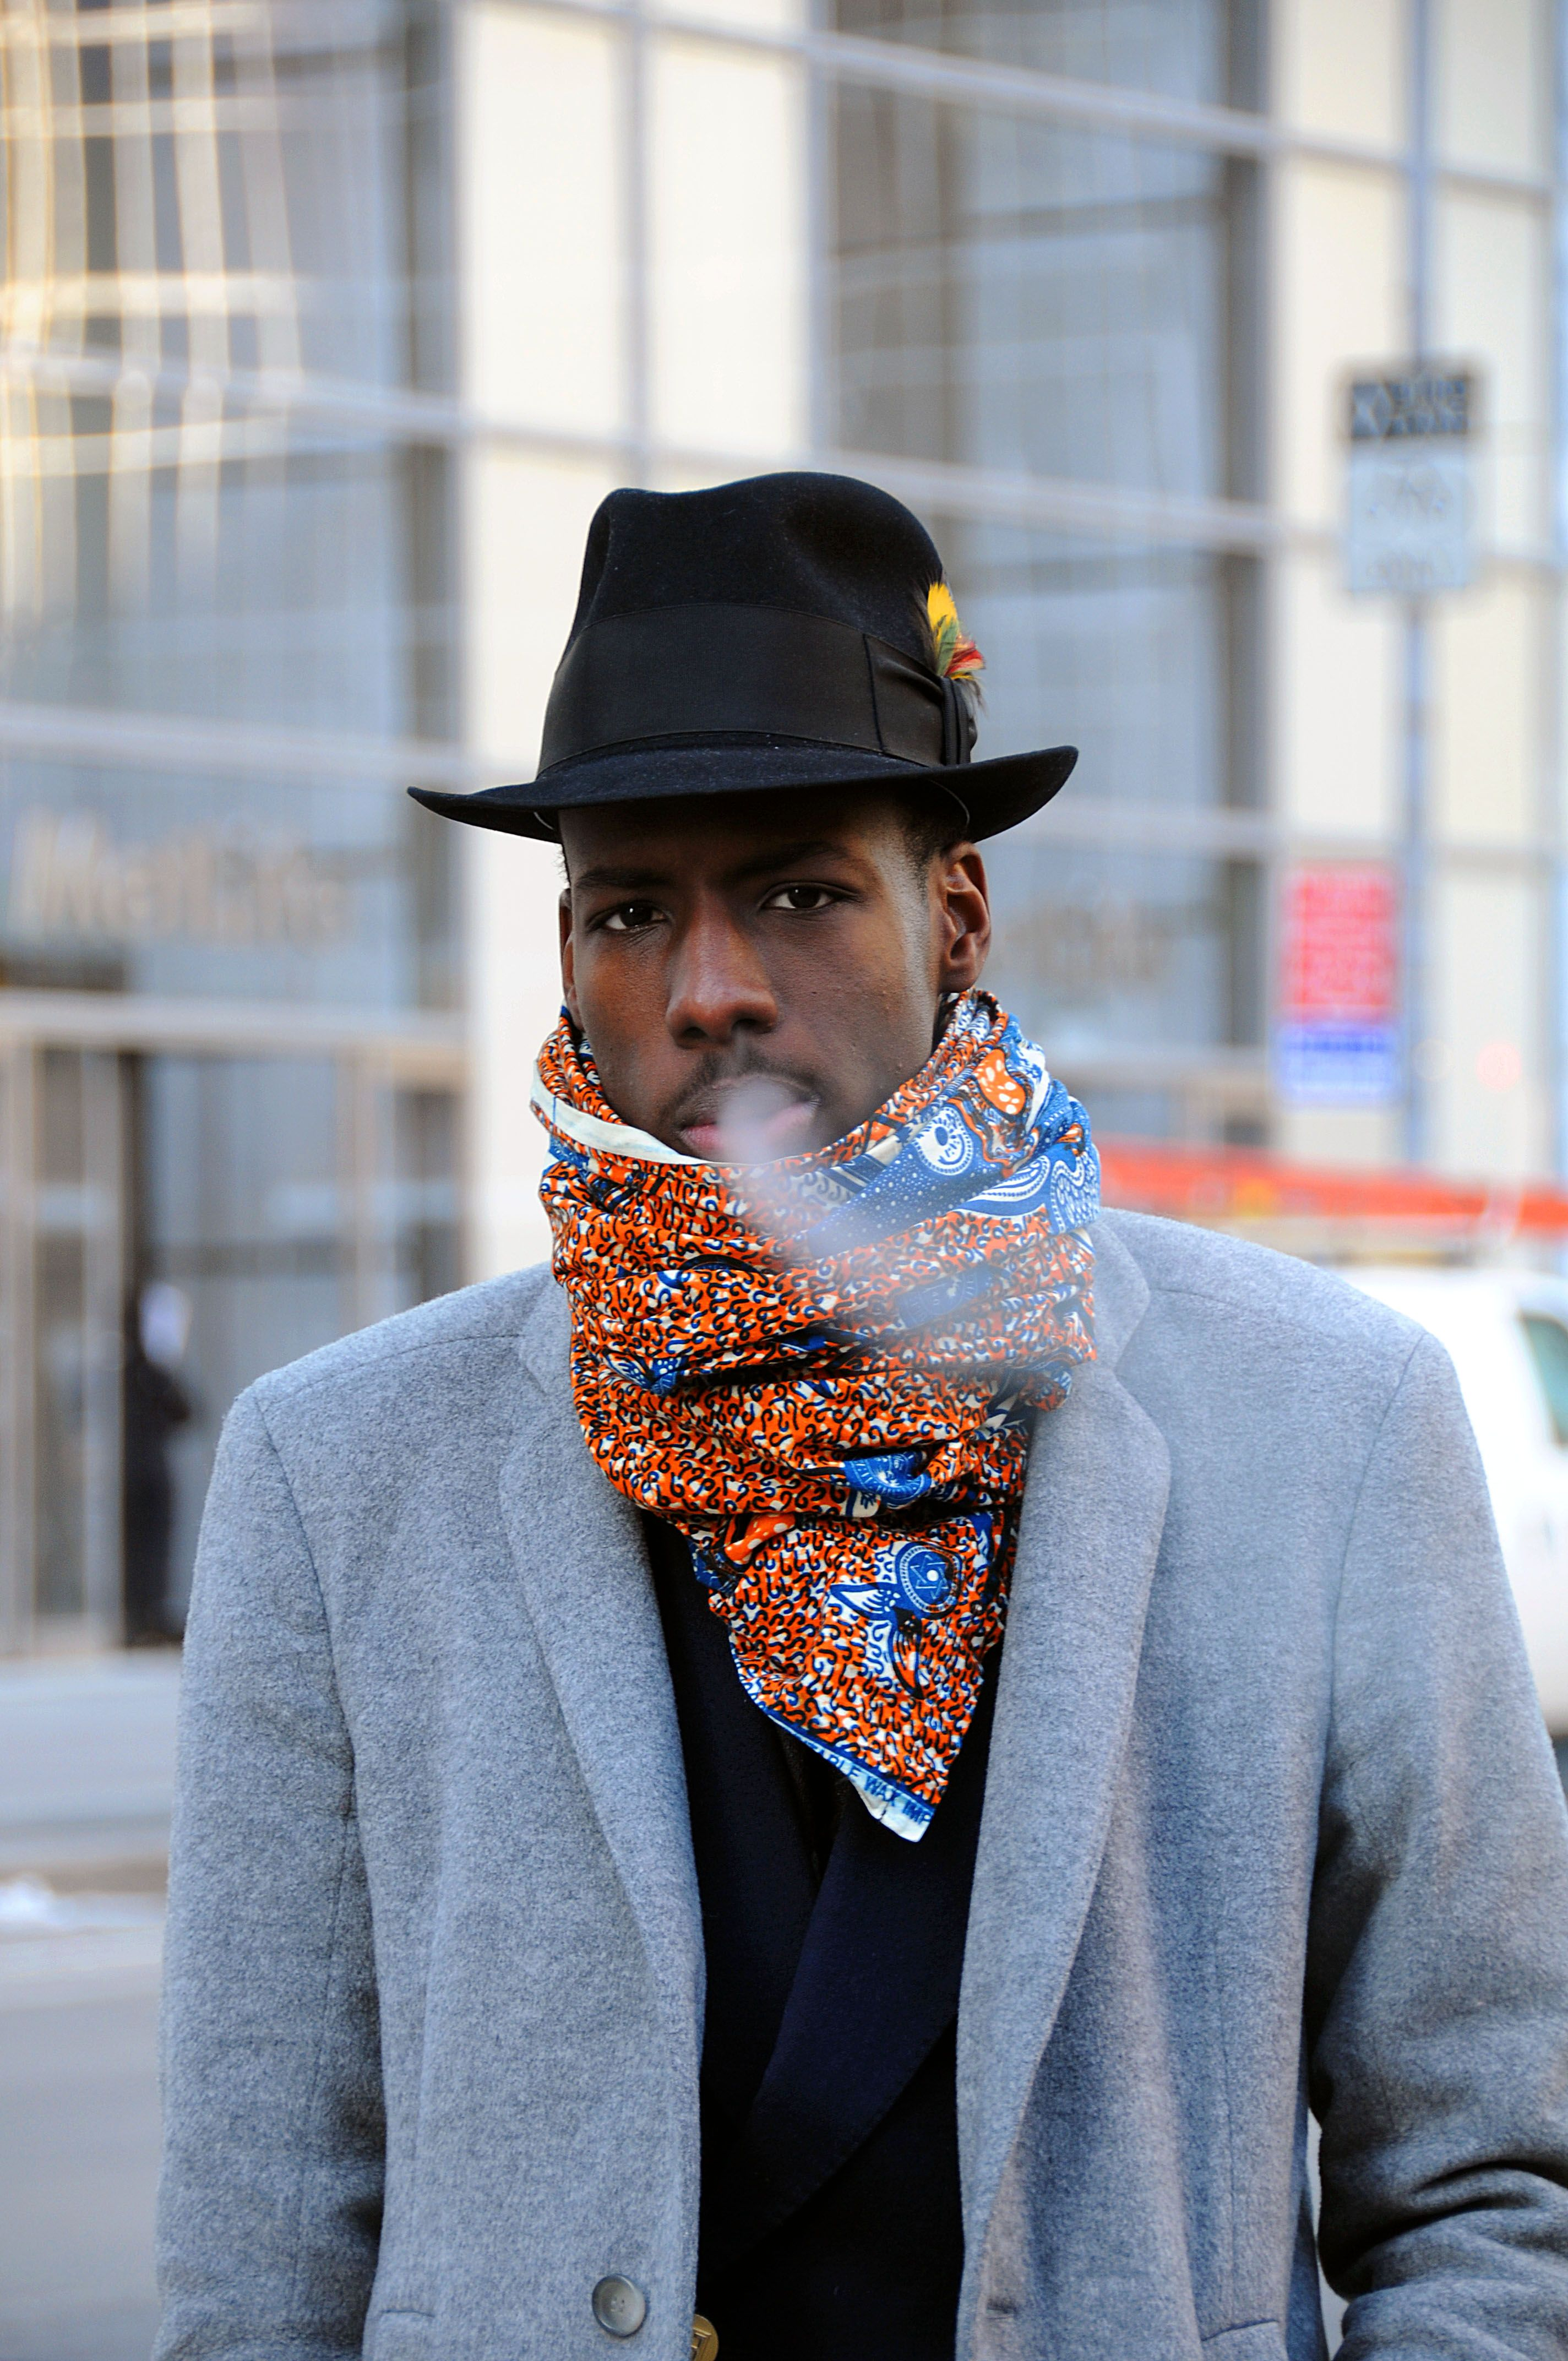 Pin on African Swag